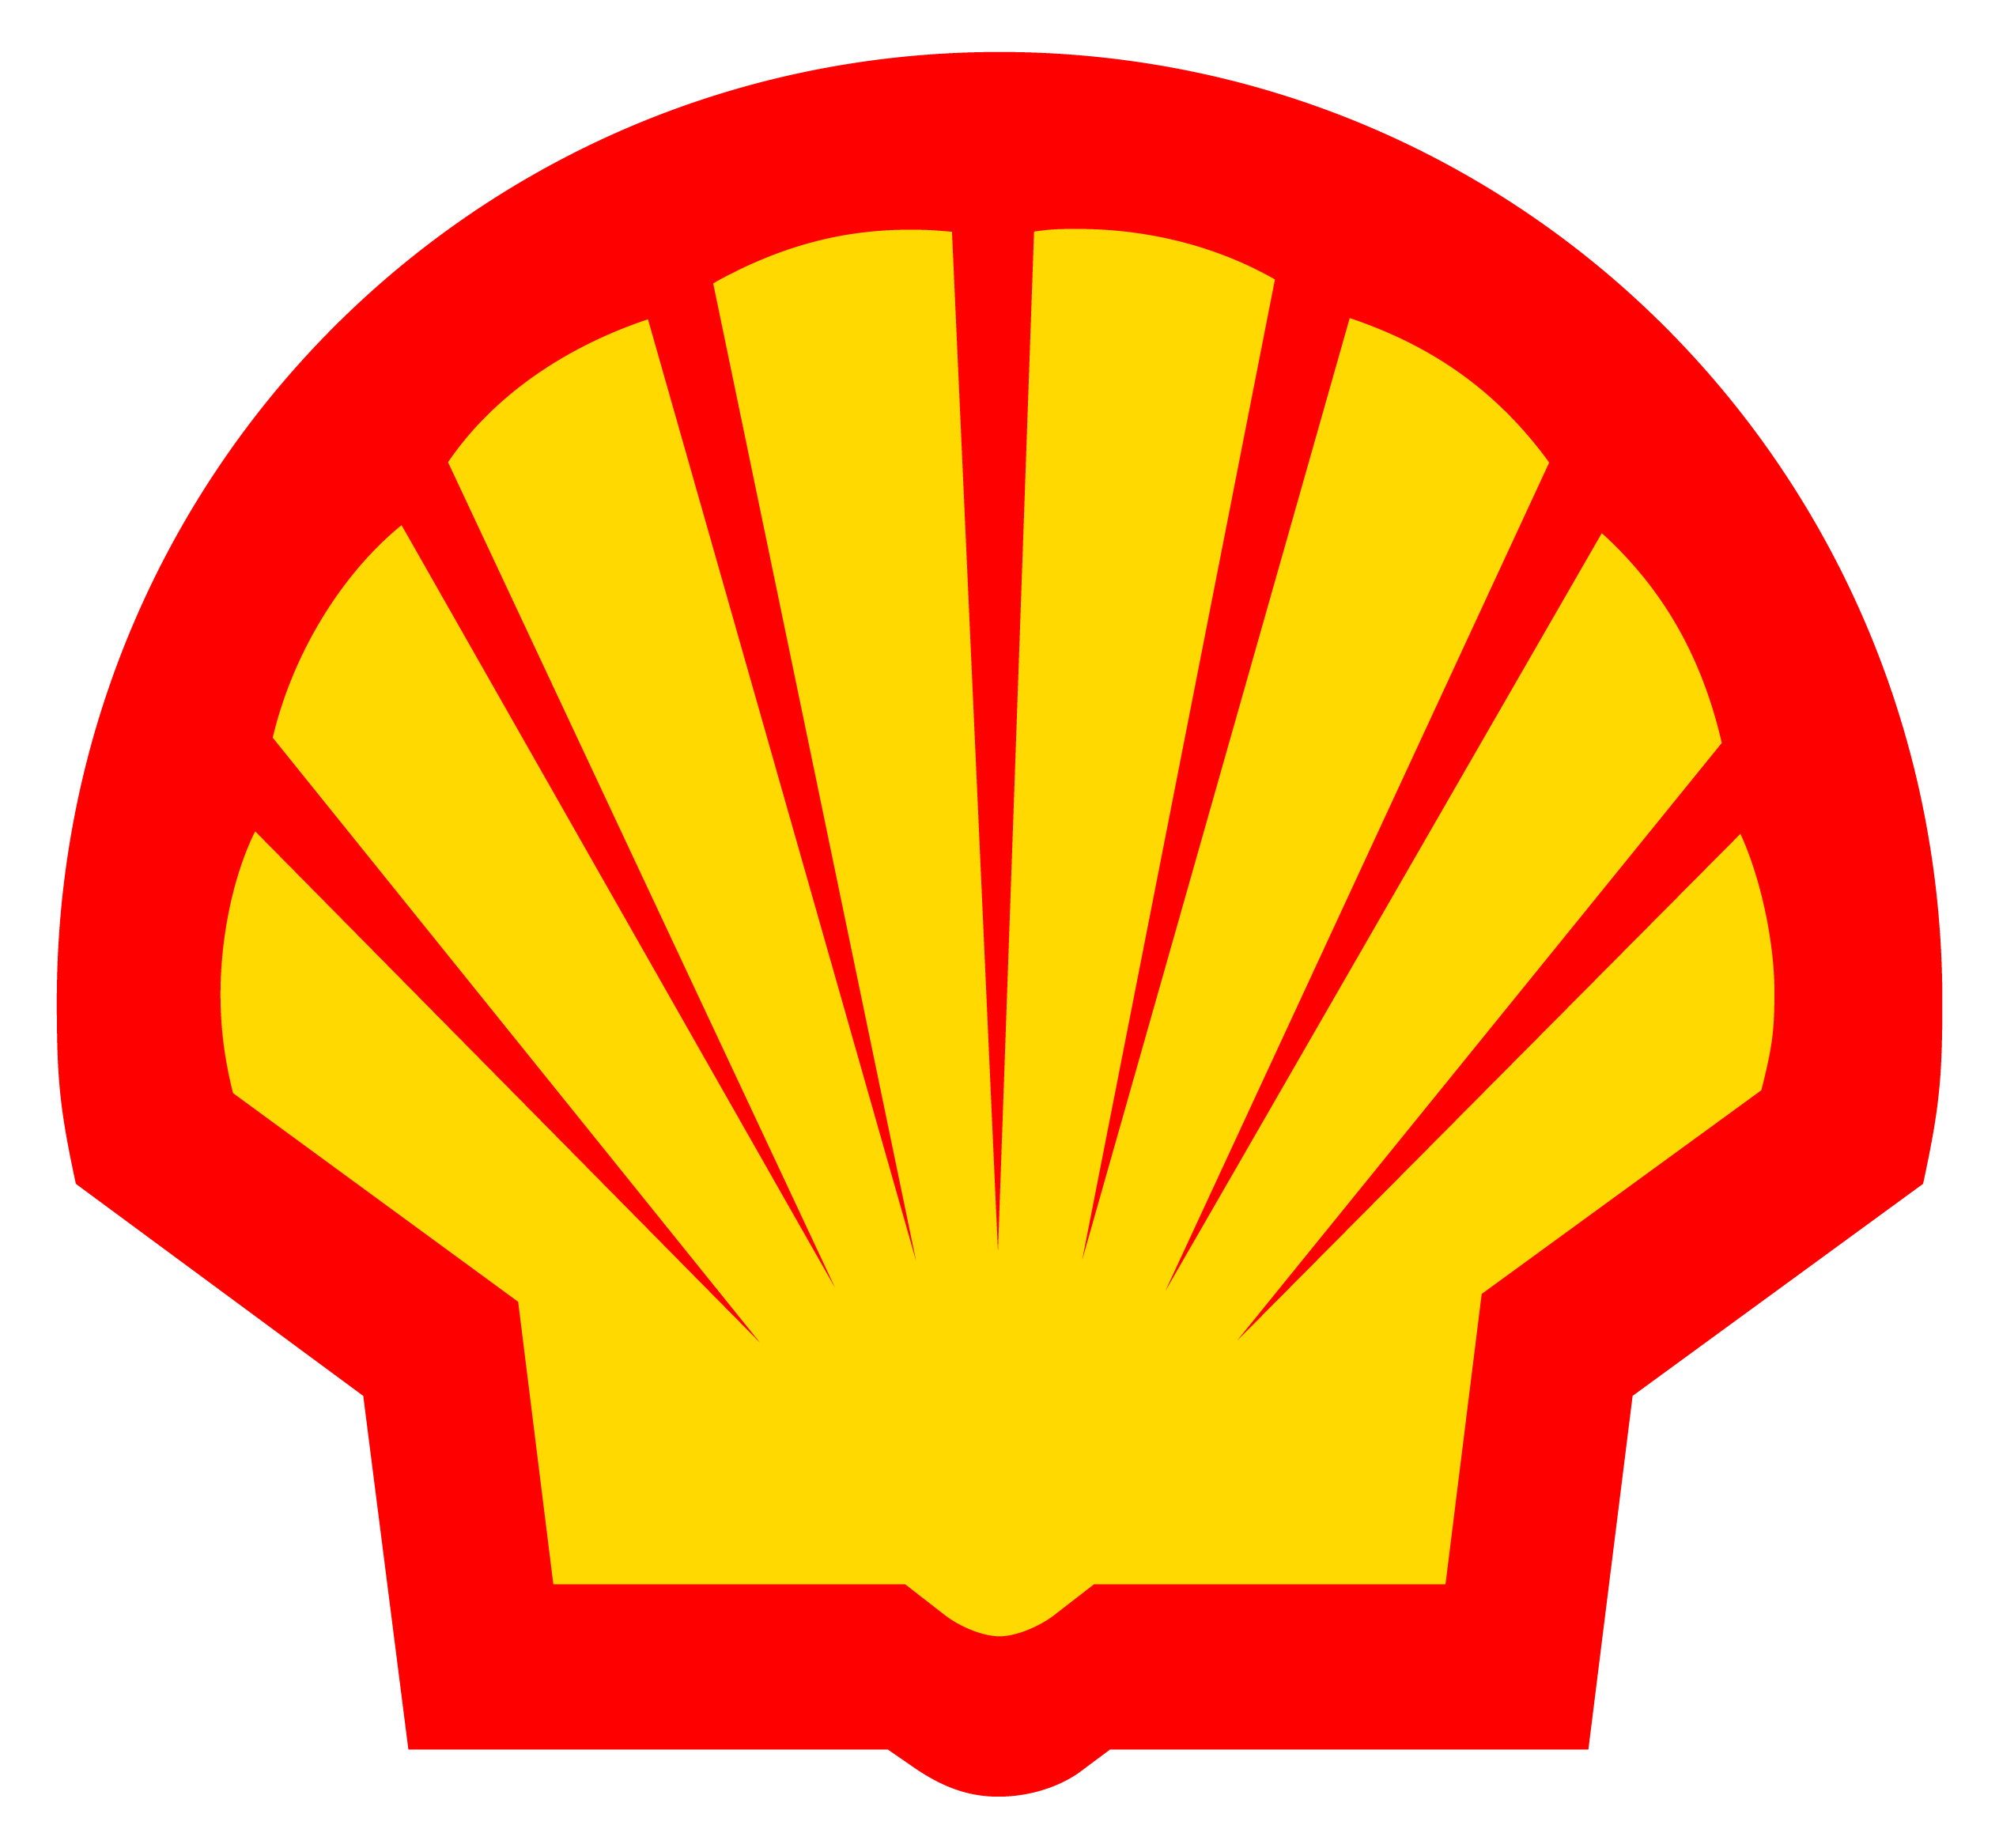 logo_shell_en_alta_resolución